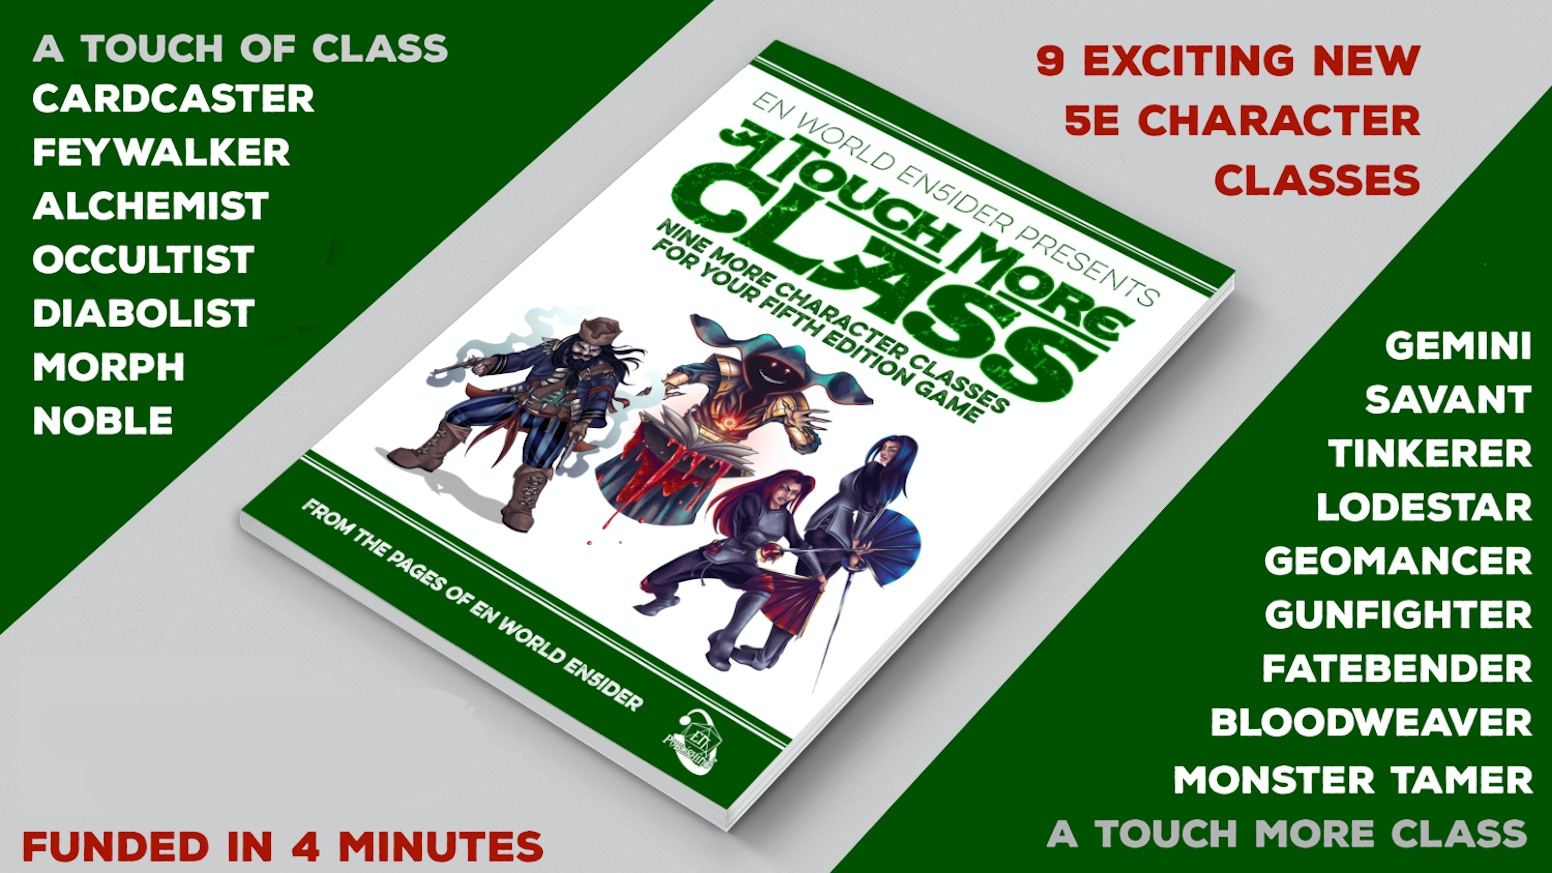 Monster tamers, gunfighters, tinkerers, savants, and more! These new classes expand your 5th Edition game in exciting new ways!